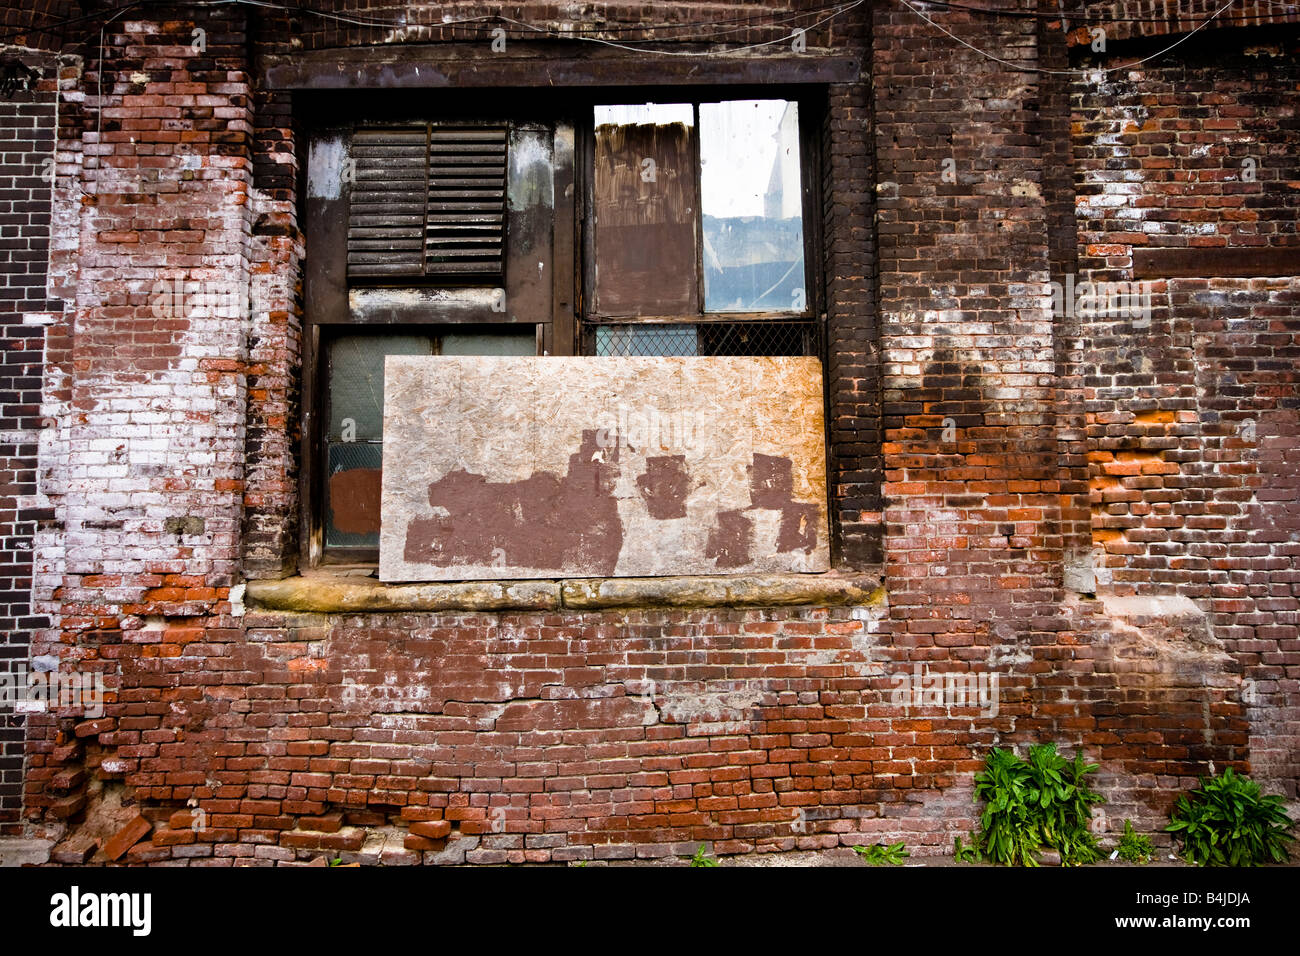 A beaten up window in the back of a factory in a brick wall in downtown Seattle, Washington. - Stock Image